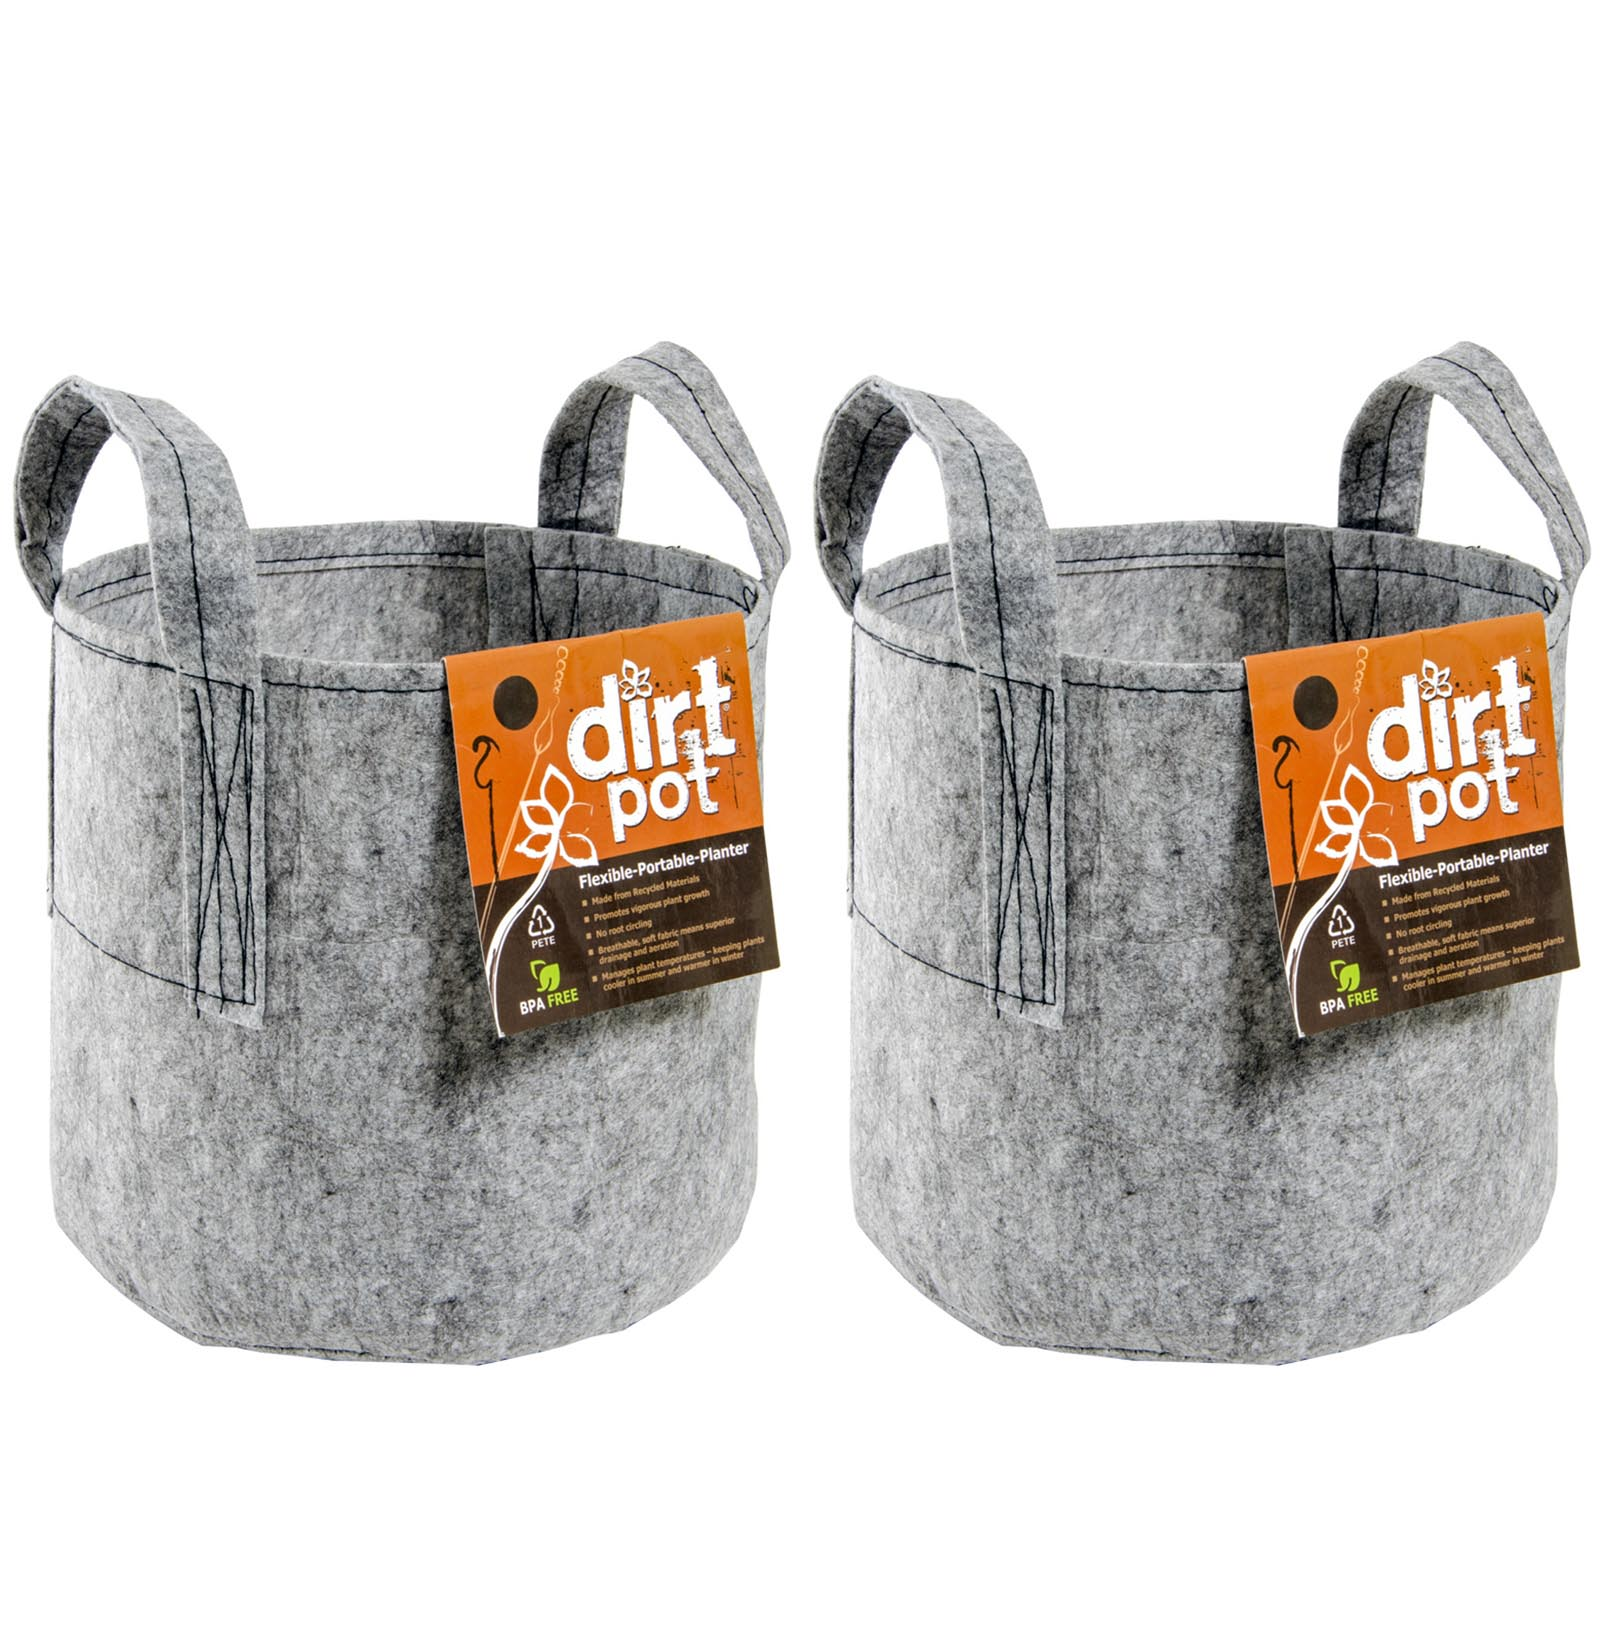 (2) HYDROFARM HGDB30 30 Gallon Portable Dirt Pot Garden Planters | 24 x 16.5""